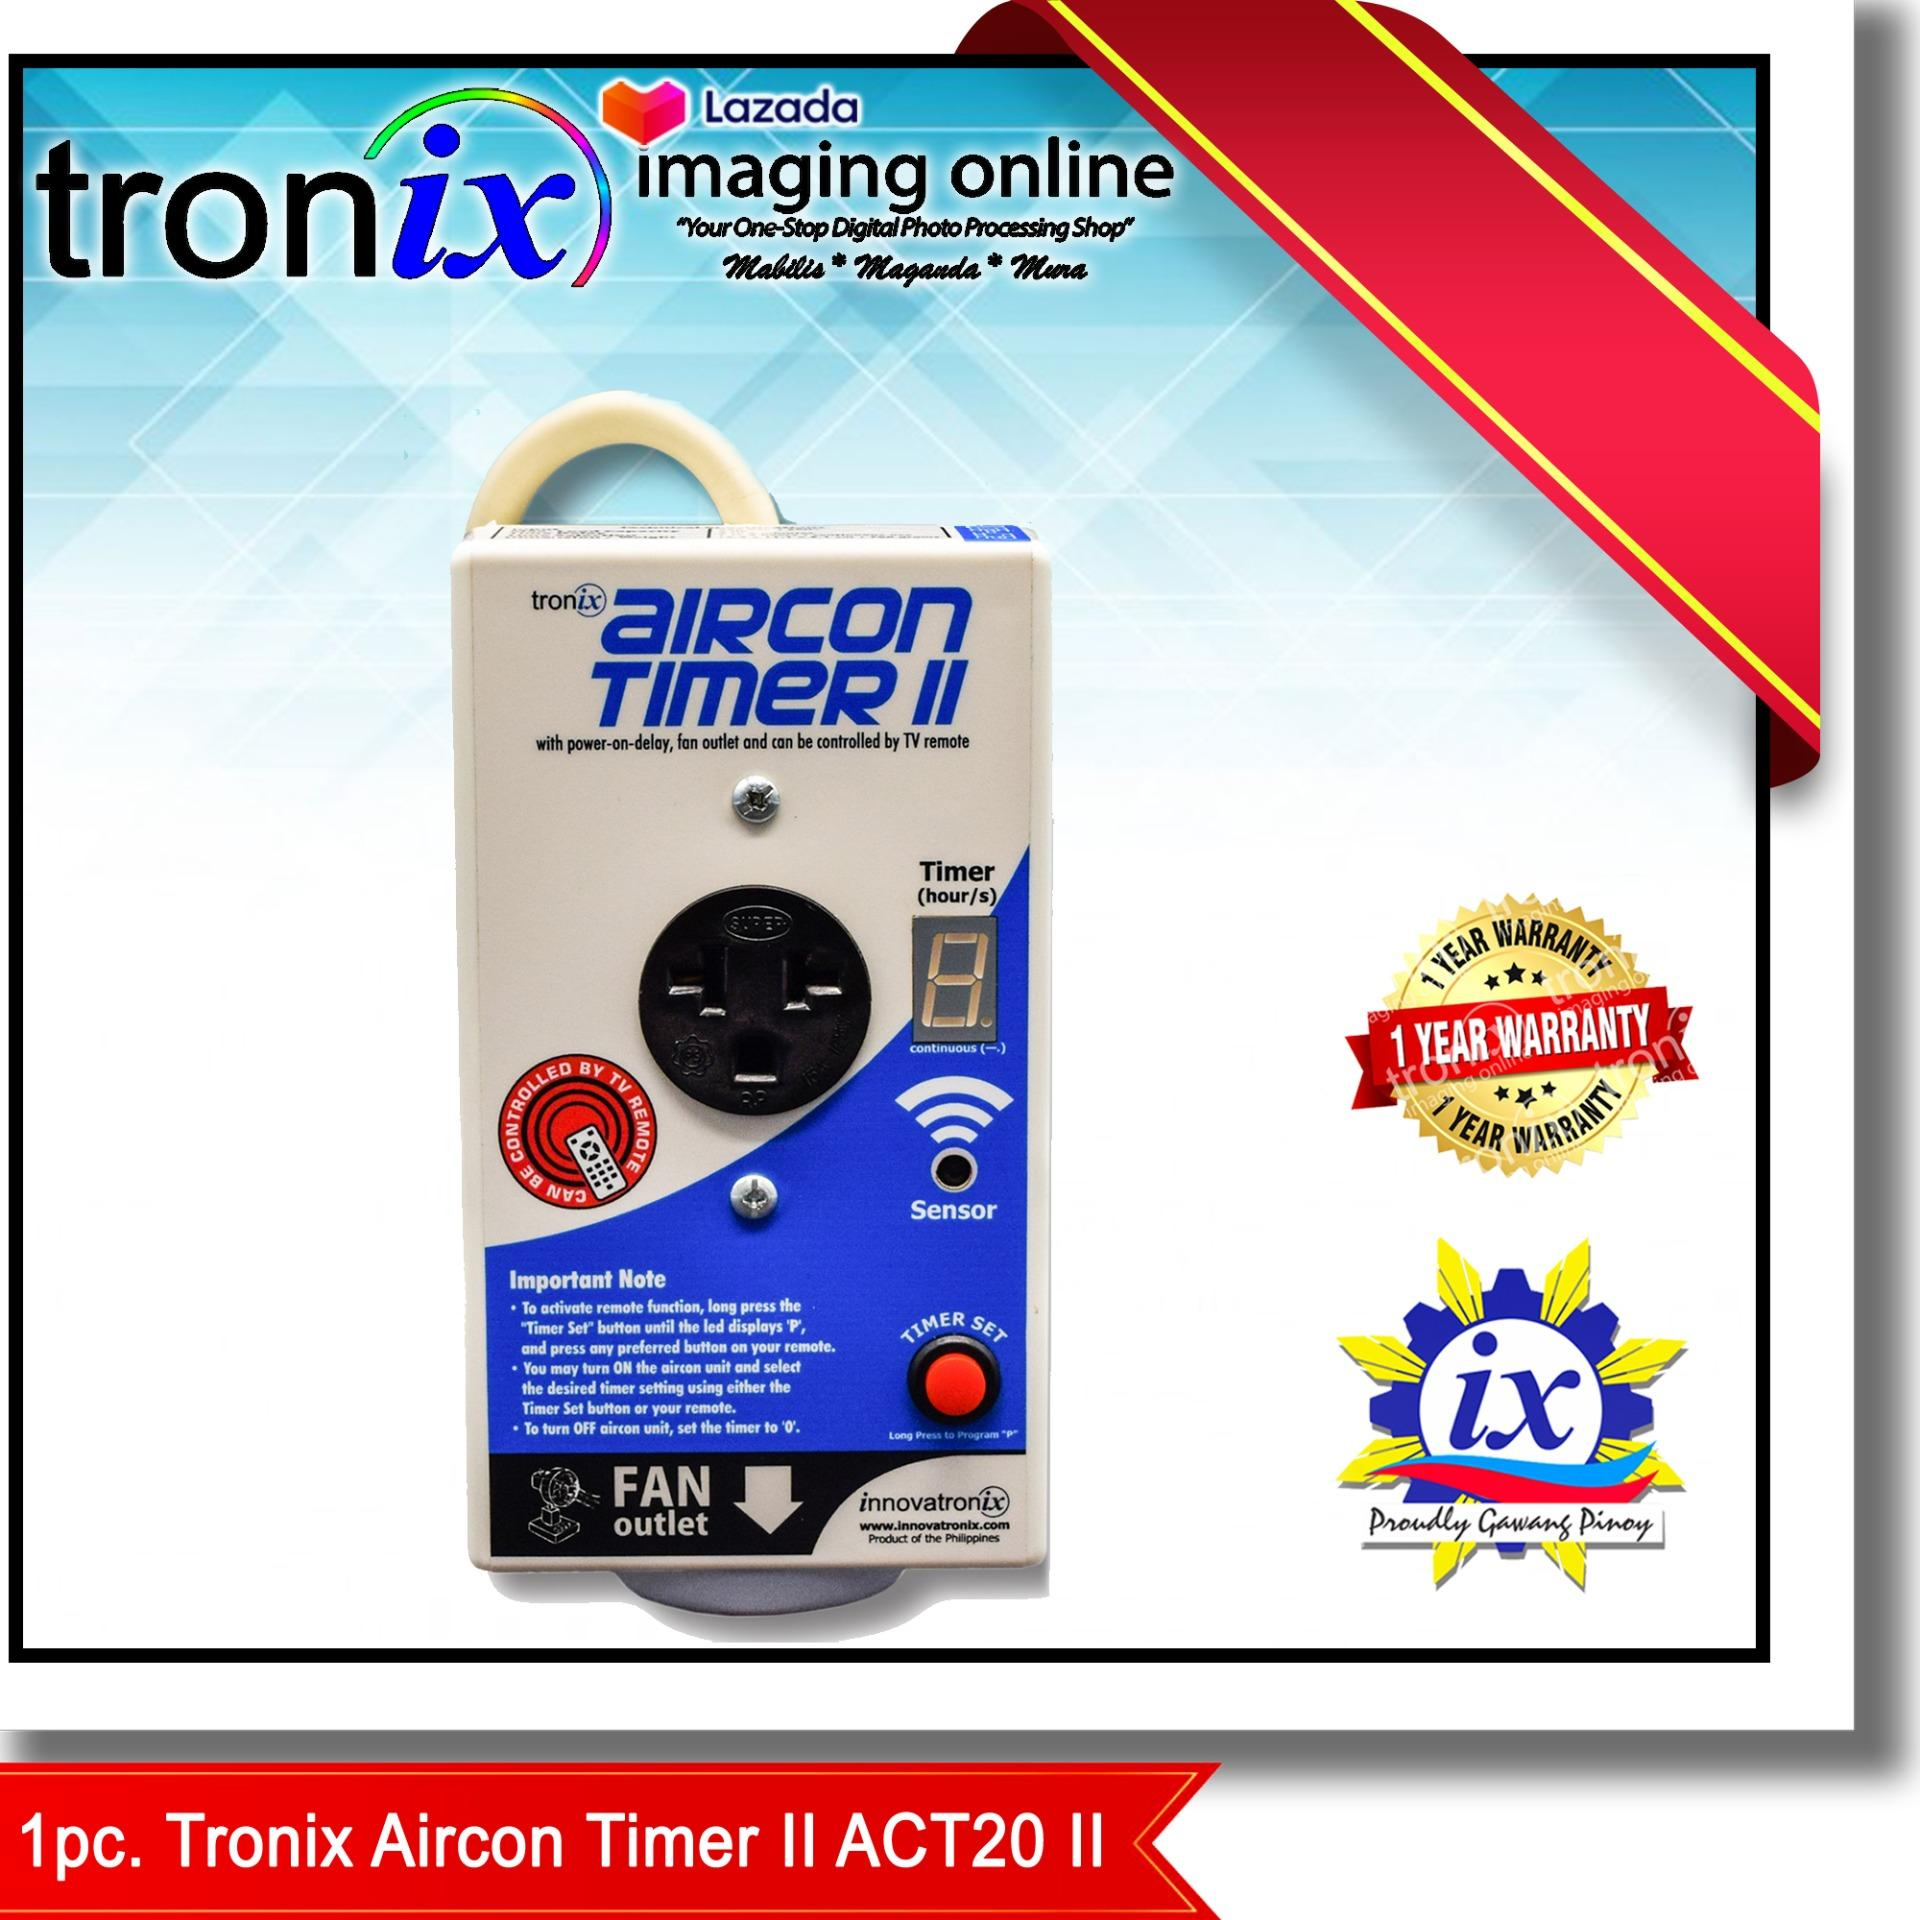 troniximaging Air con Timer ACT20 II One (1) piece Energy Saver and  Appliance Protector AirCon Timer version II with Power On Delay and can be